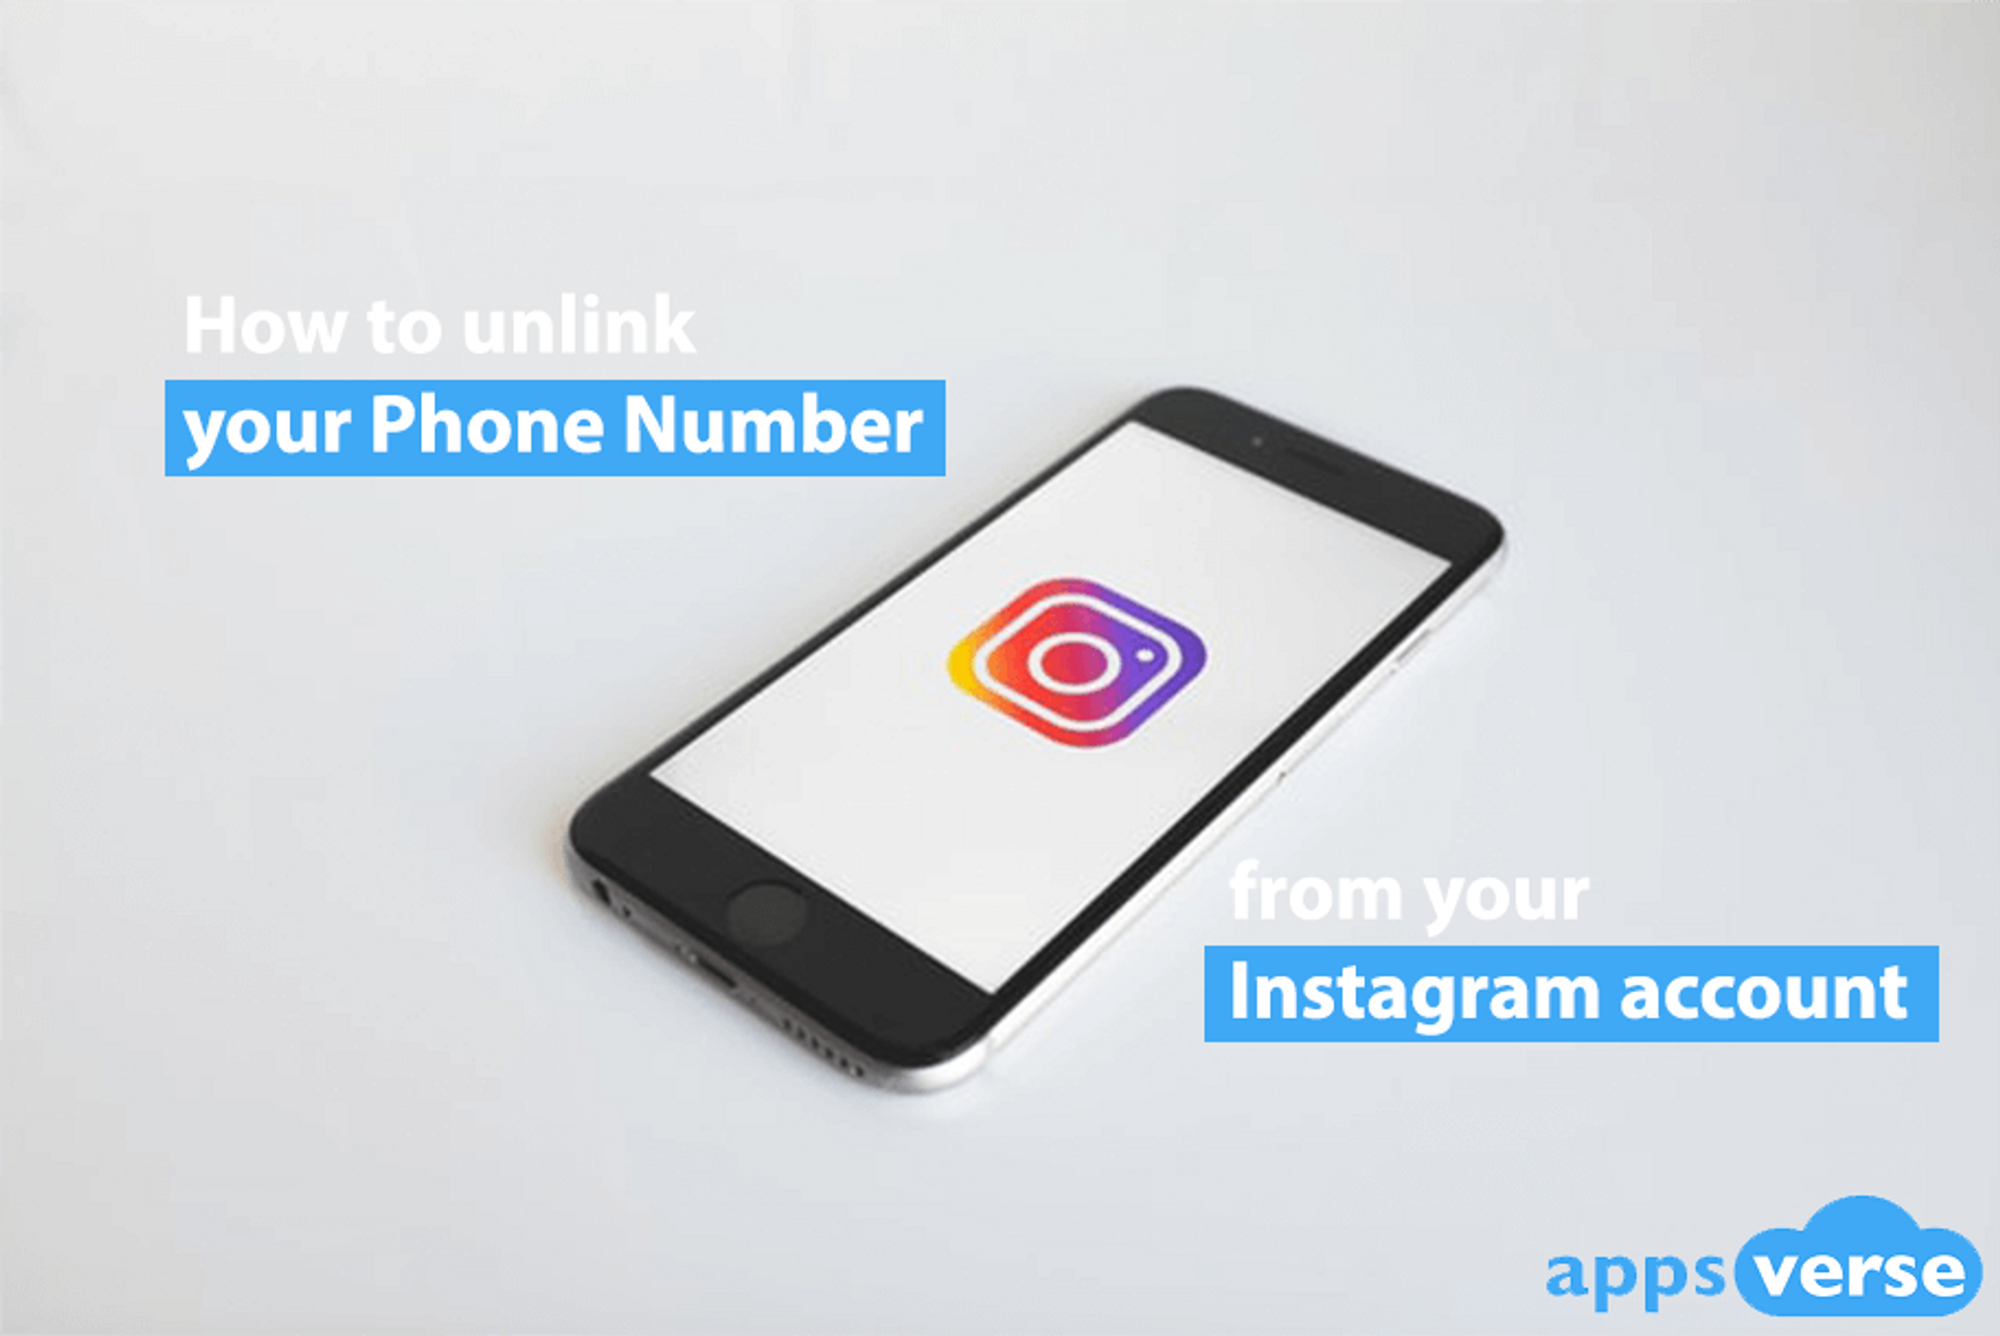 How to unlink your phone number from your Instagram account